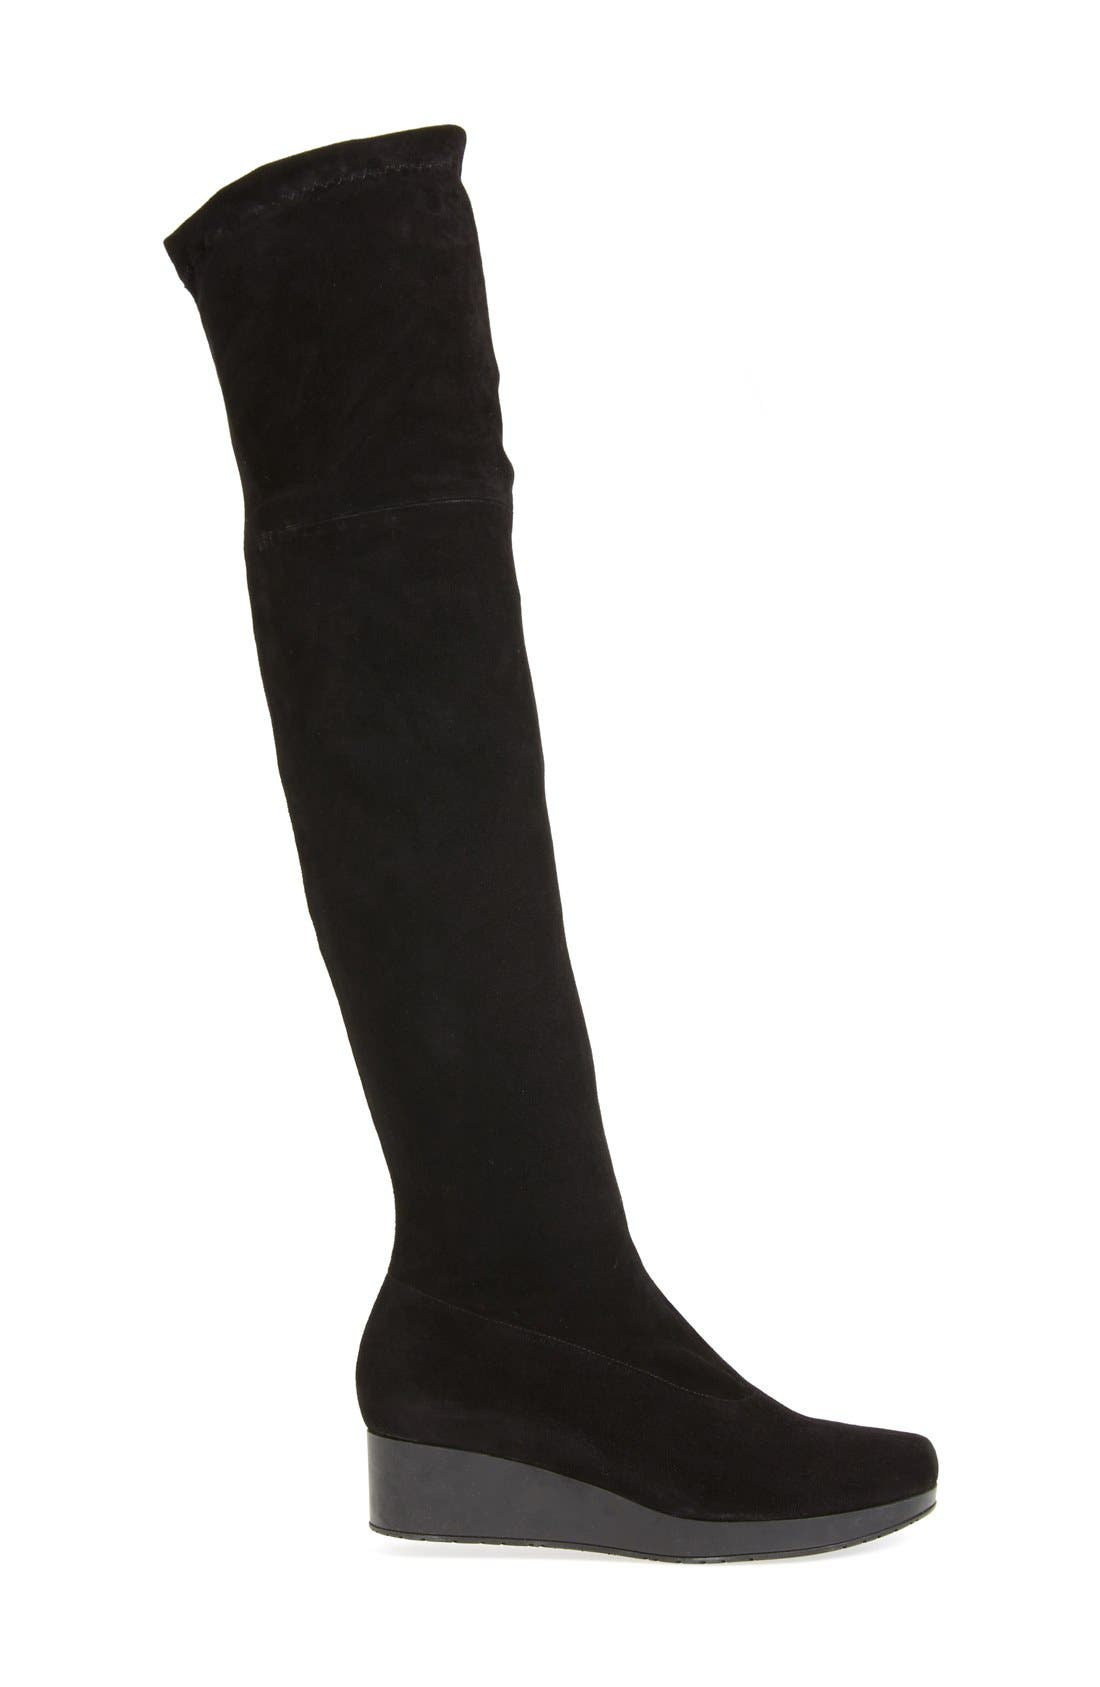 Wedge Over the Knee Boot,                             Alternate thumbnail 4, color,                             Black Suede